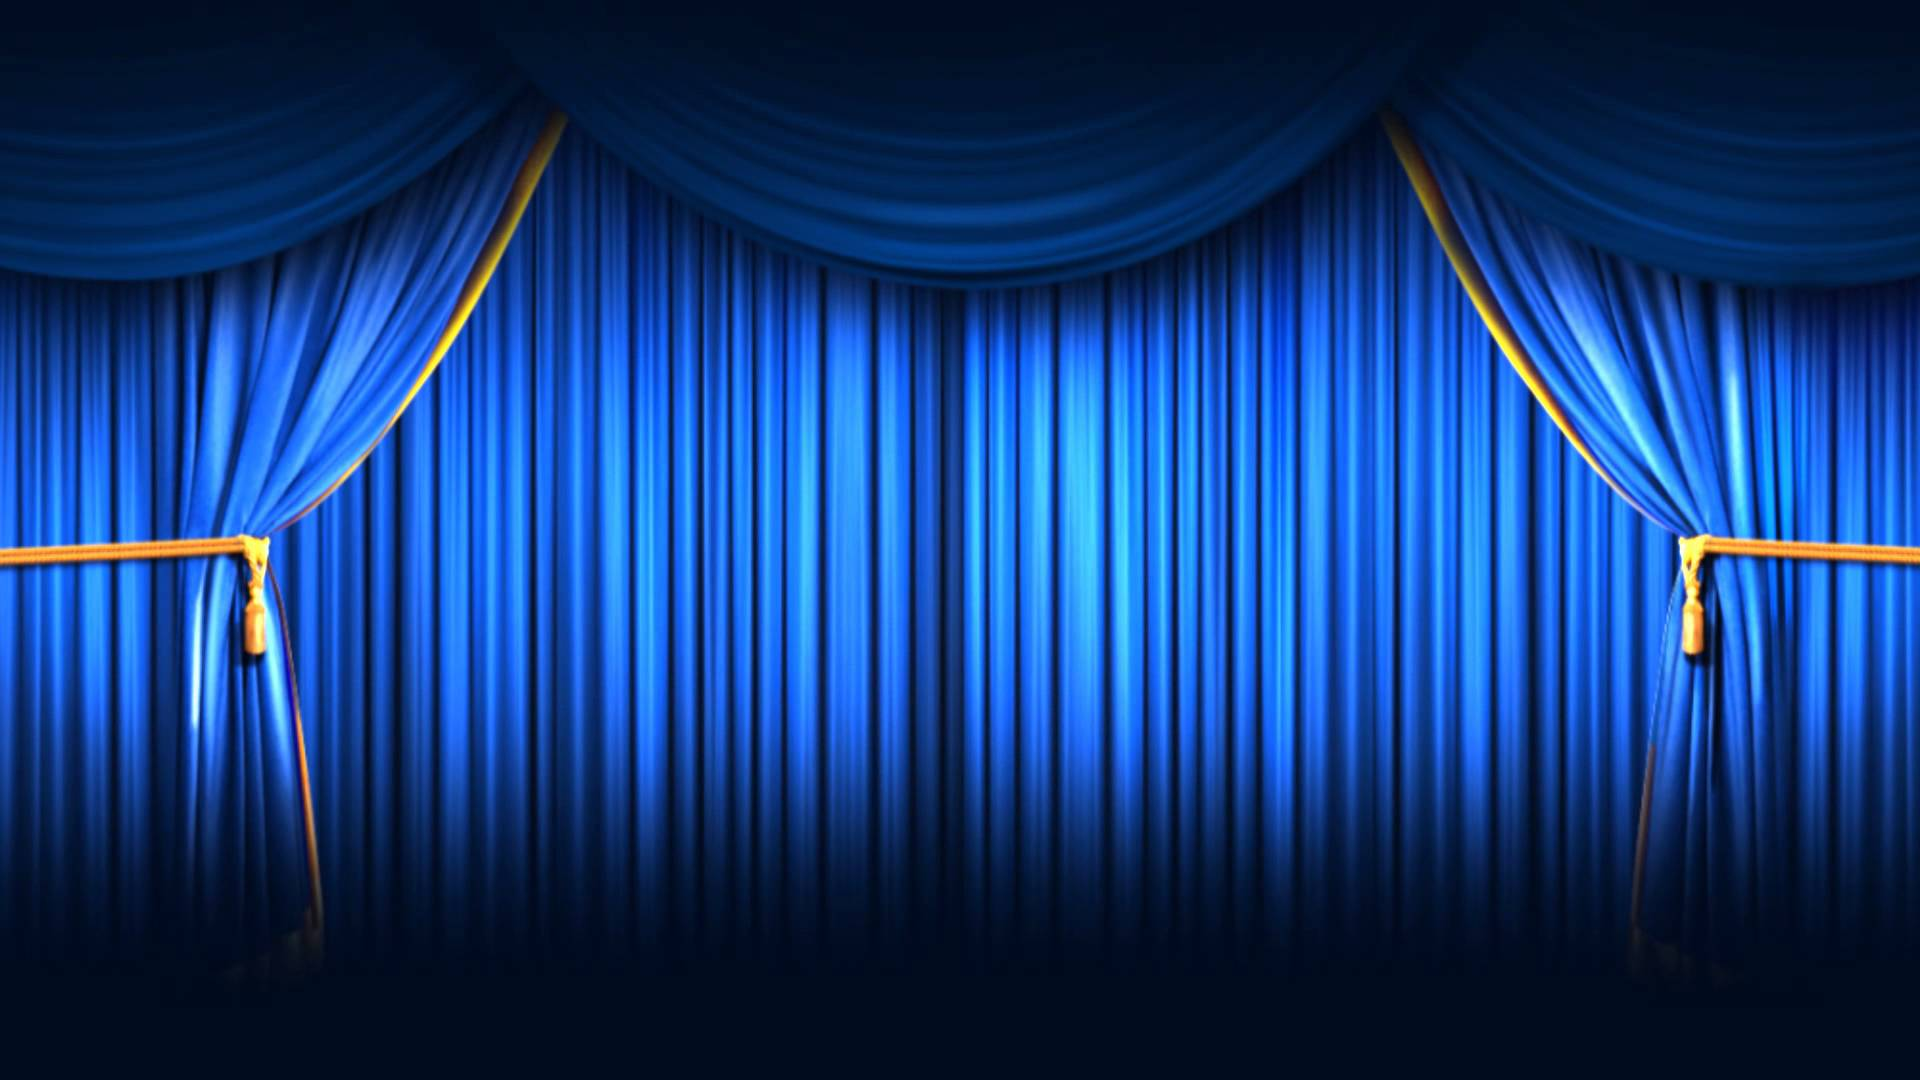 Stage Backgrounds Wallpapersafari